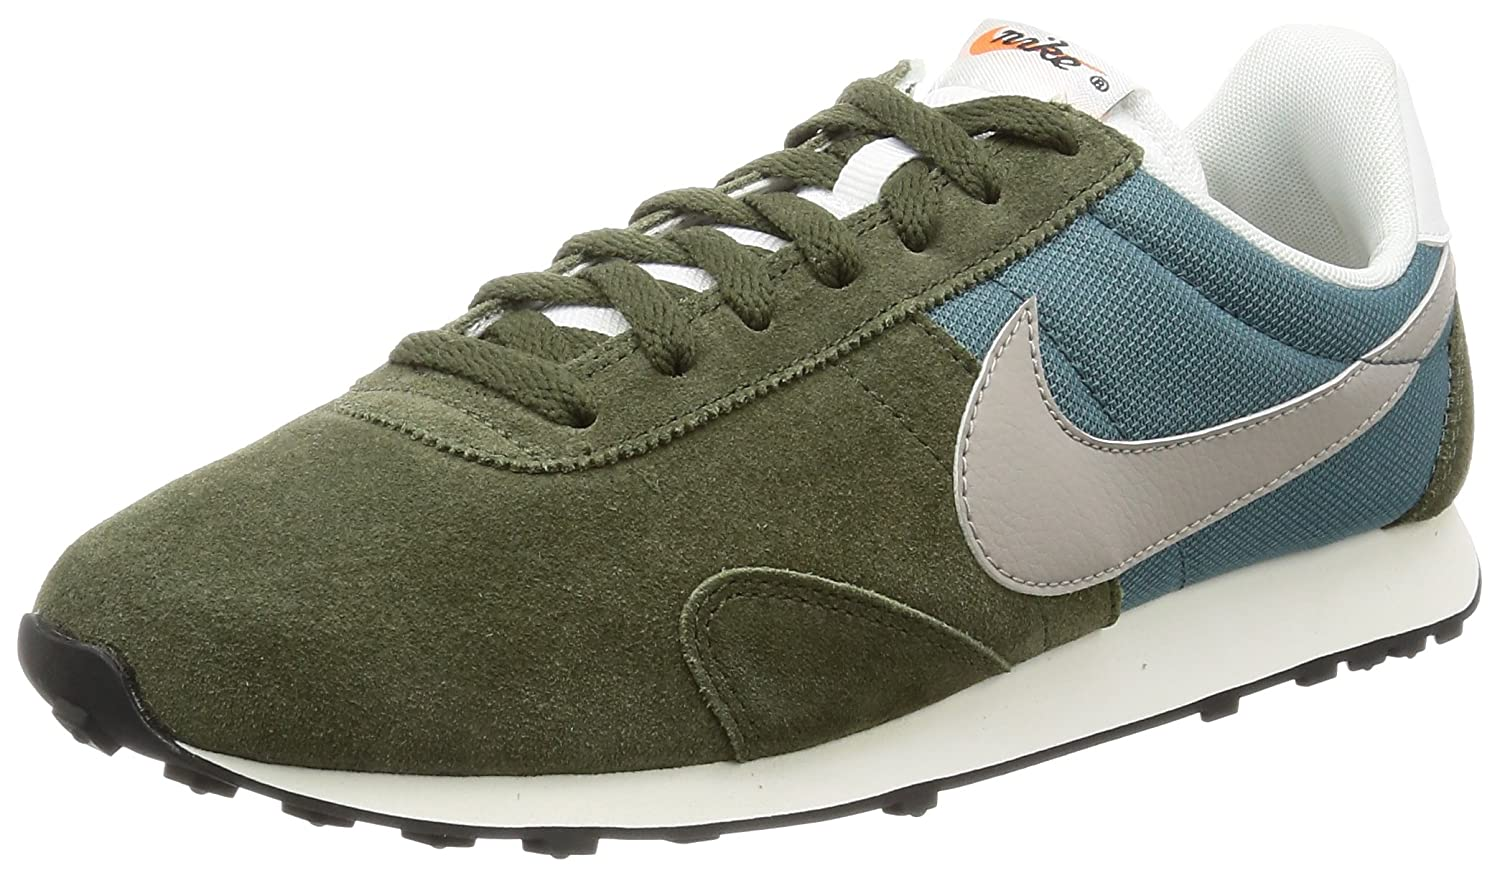 Man's/Woman's Grey-SAIL Nike Men's Pre Montreal 17, Black/SAIL-Pale Grey-SAIL Man's/Woman's Year-end special promotions Impeccable Export WH13739 ab07d6